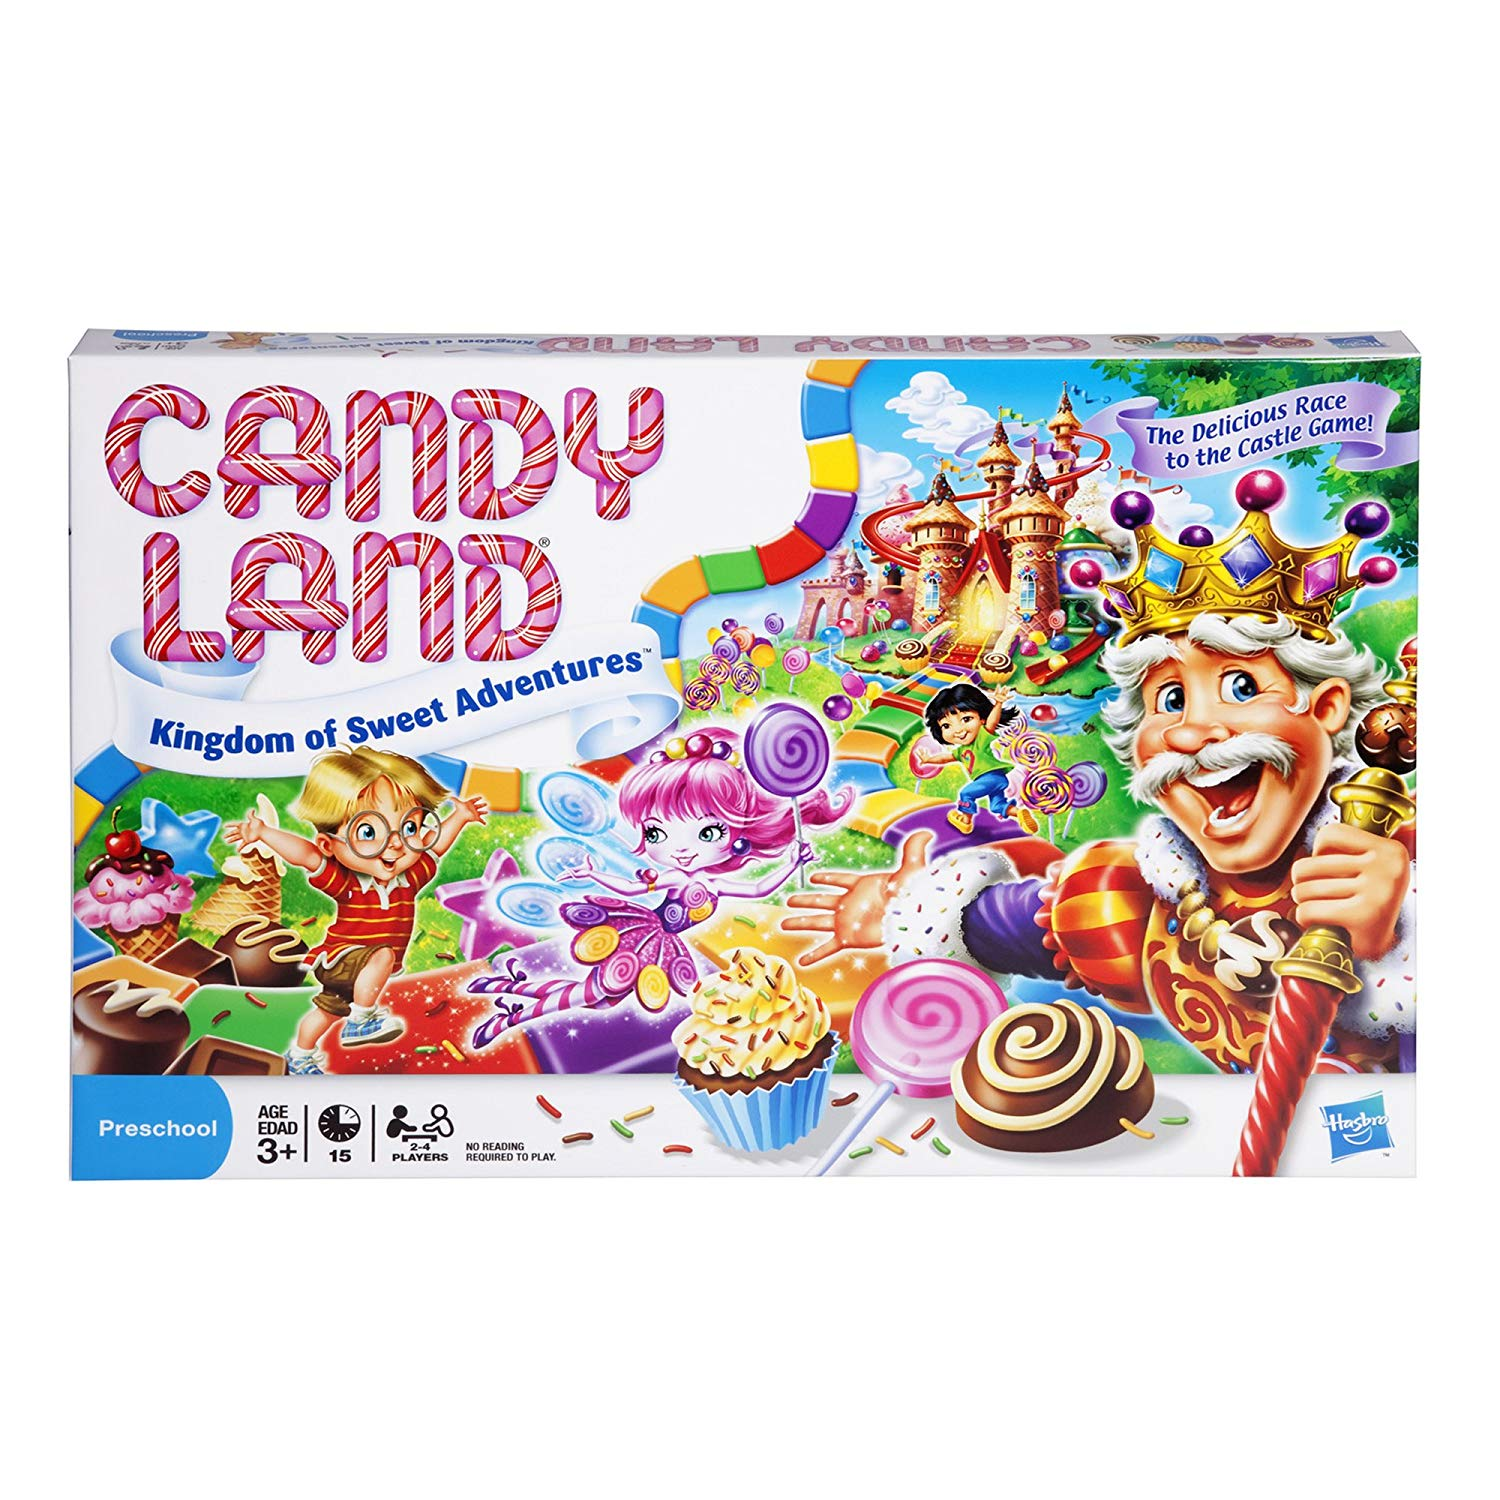 Candy Land Kingdom of Sweet Adventures is an updated version of the beloved boardgame